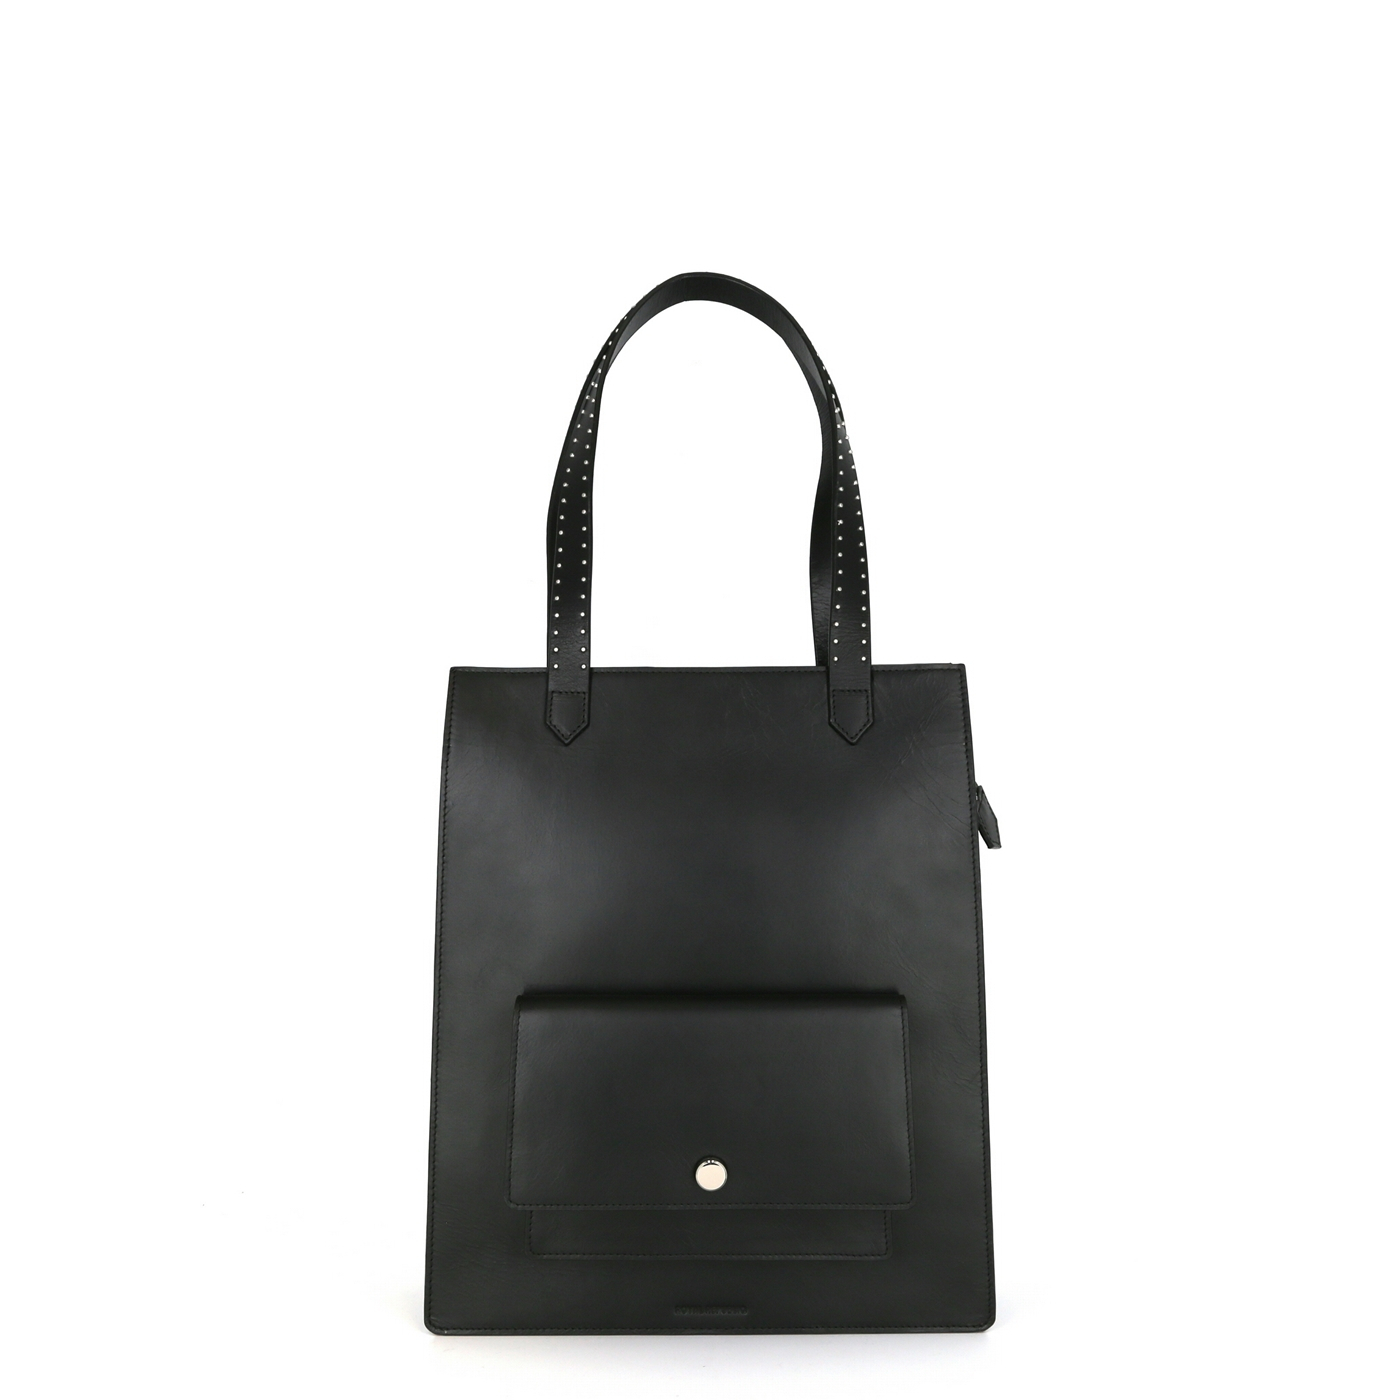 Bilde av Bridge 194 Handbag 2 308 001 194 14 010011